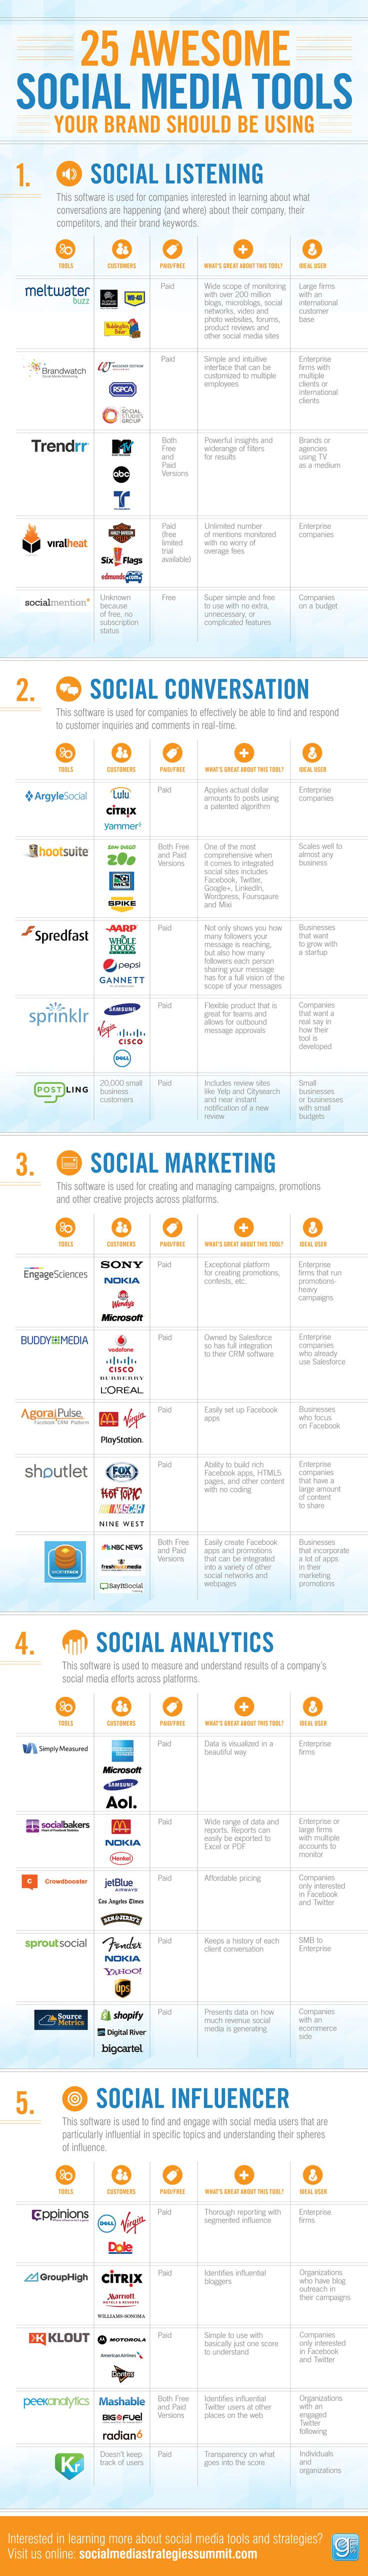 25 Awesome Social Media Monitoring Tools Your Brand Should Be Using | infographic | via Social Media Today | social media